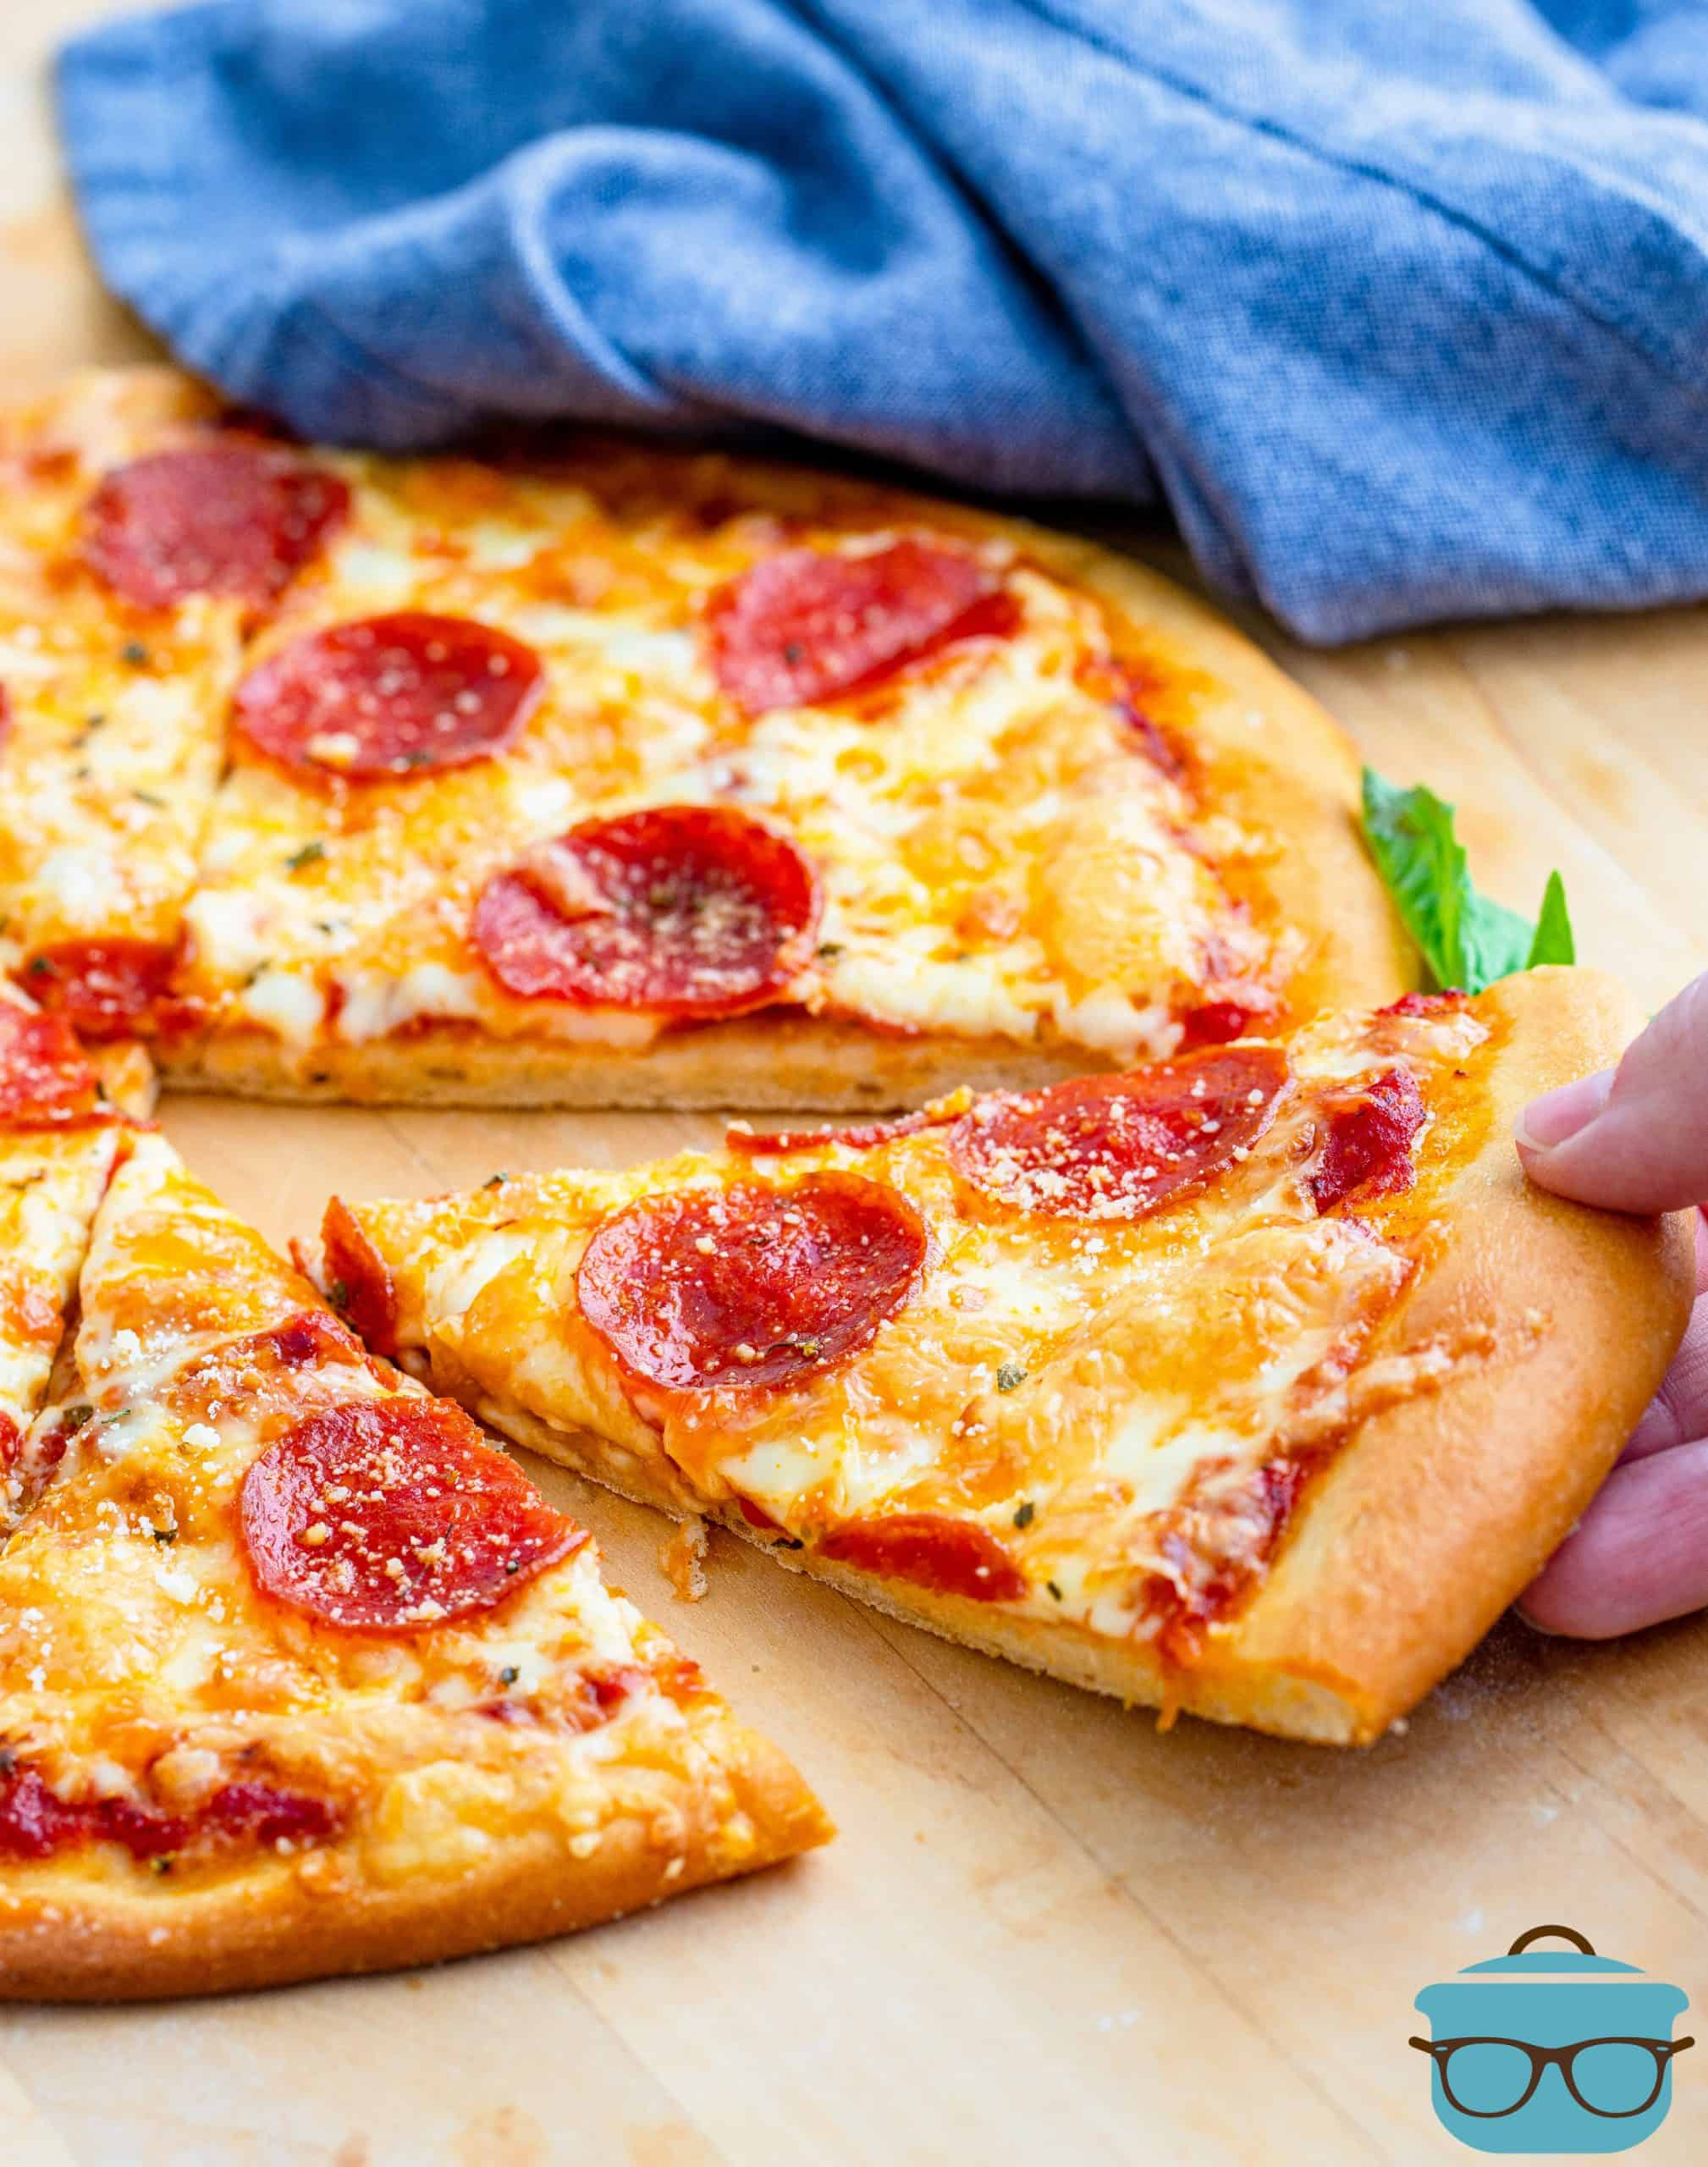 whole pepperoni pizza shown on a wooden board with one slice being removed.